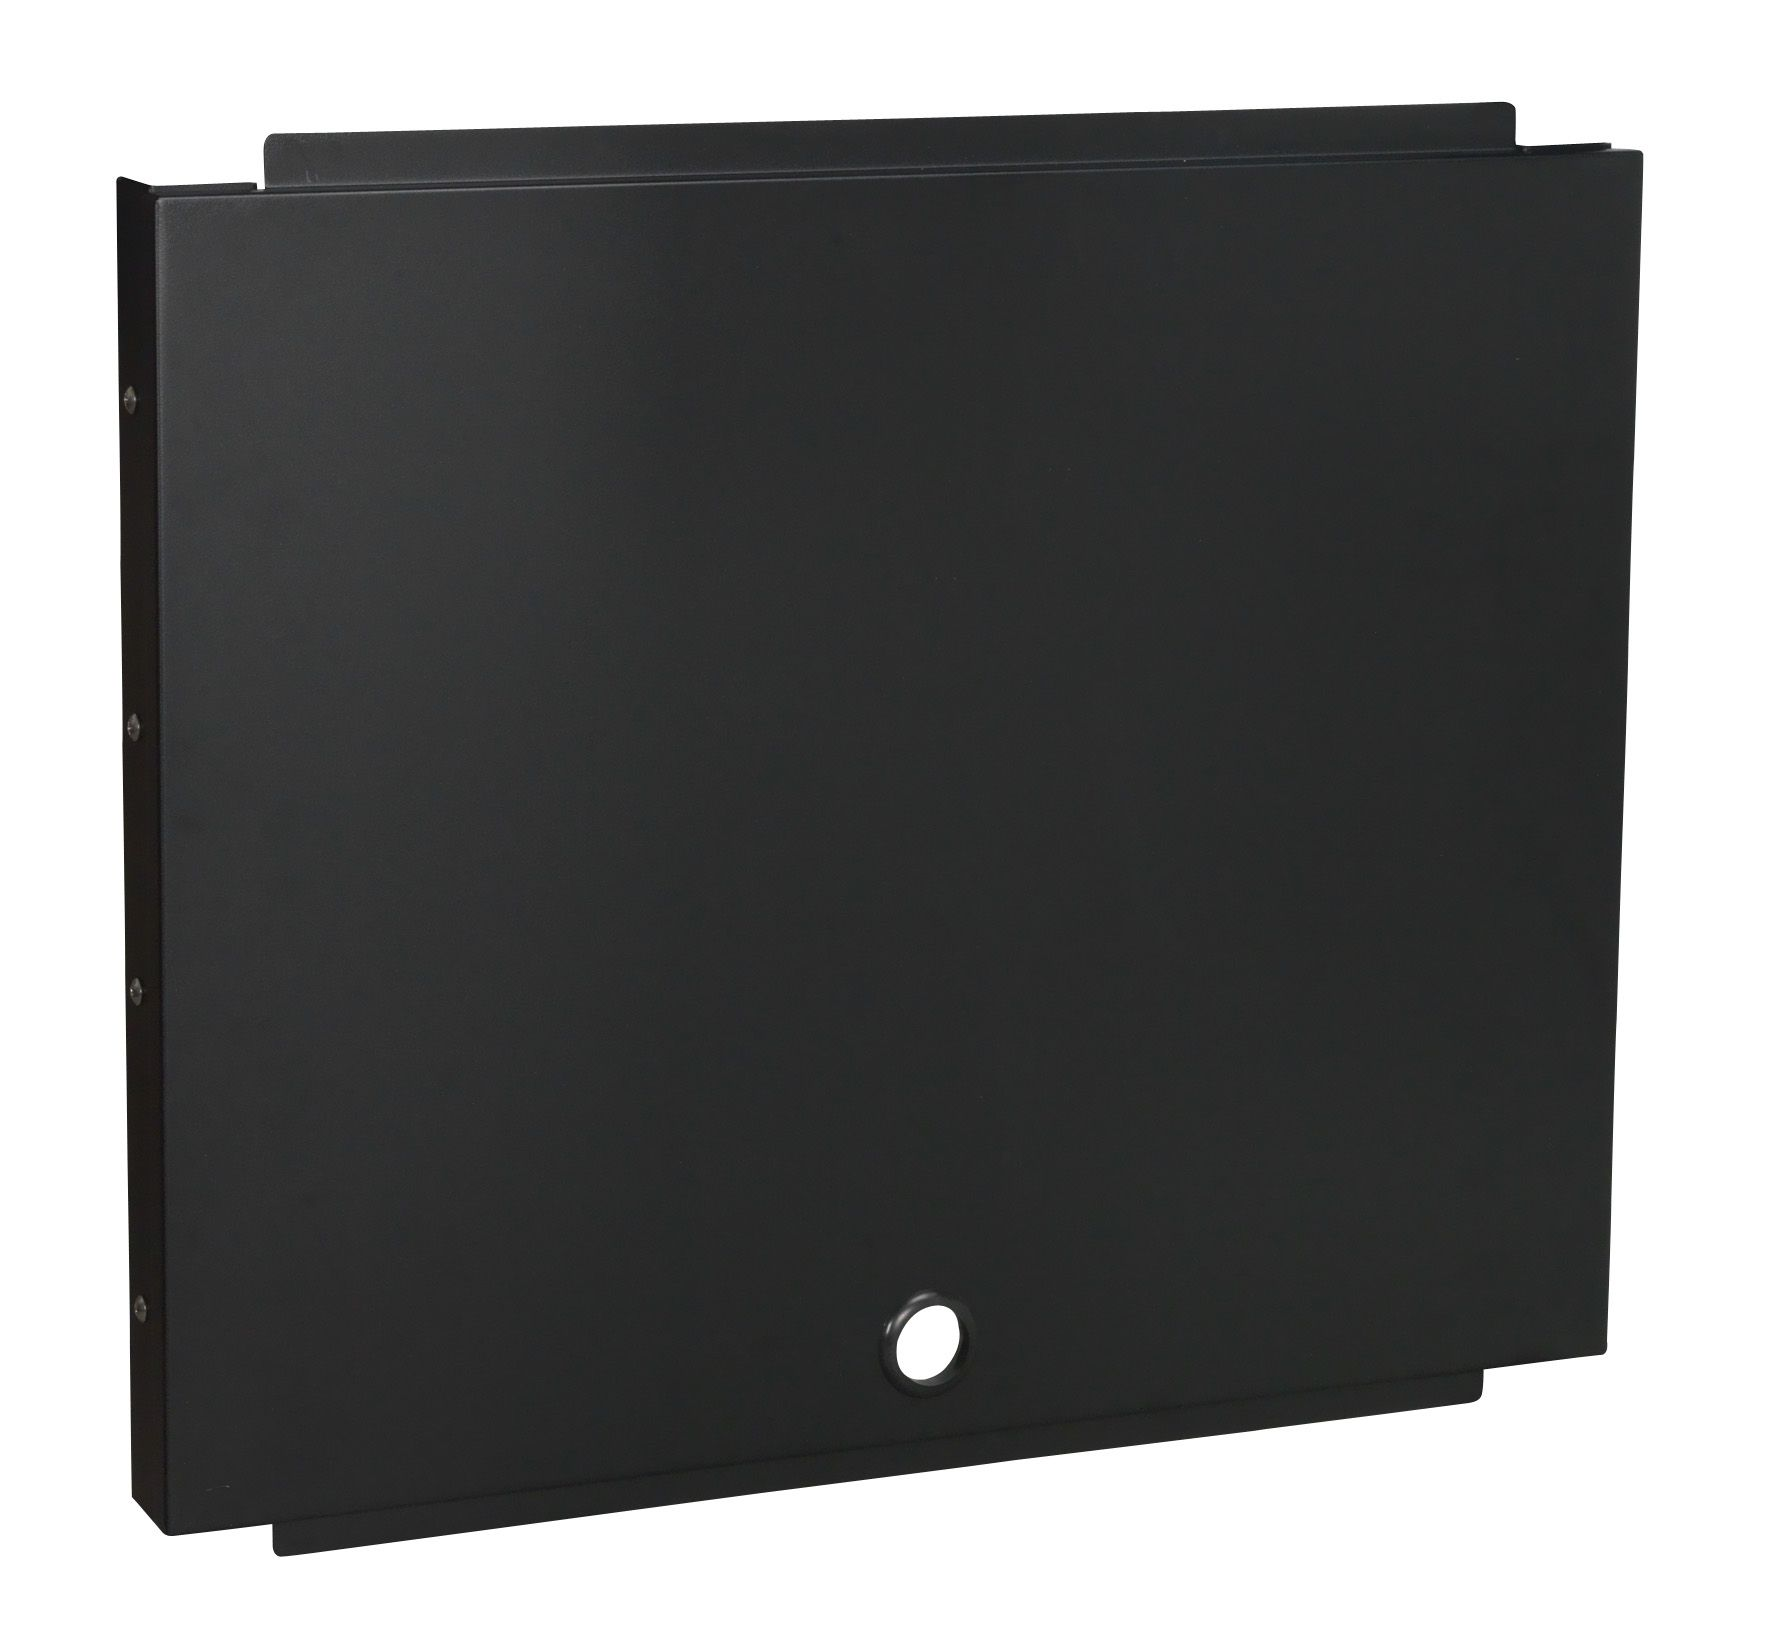 Sealey Premier Modular Back Panel 775mm